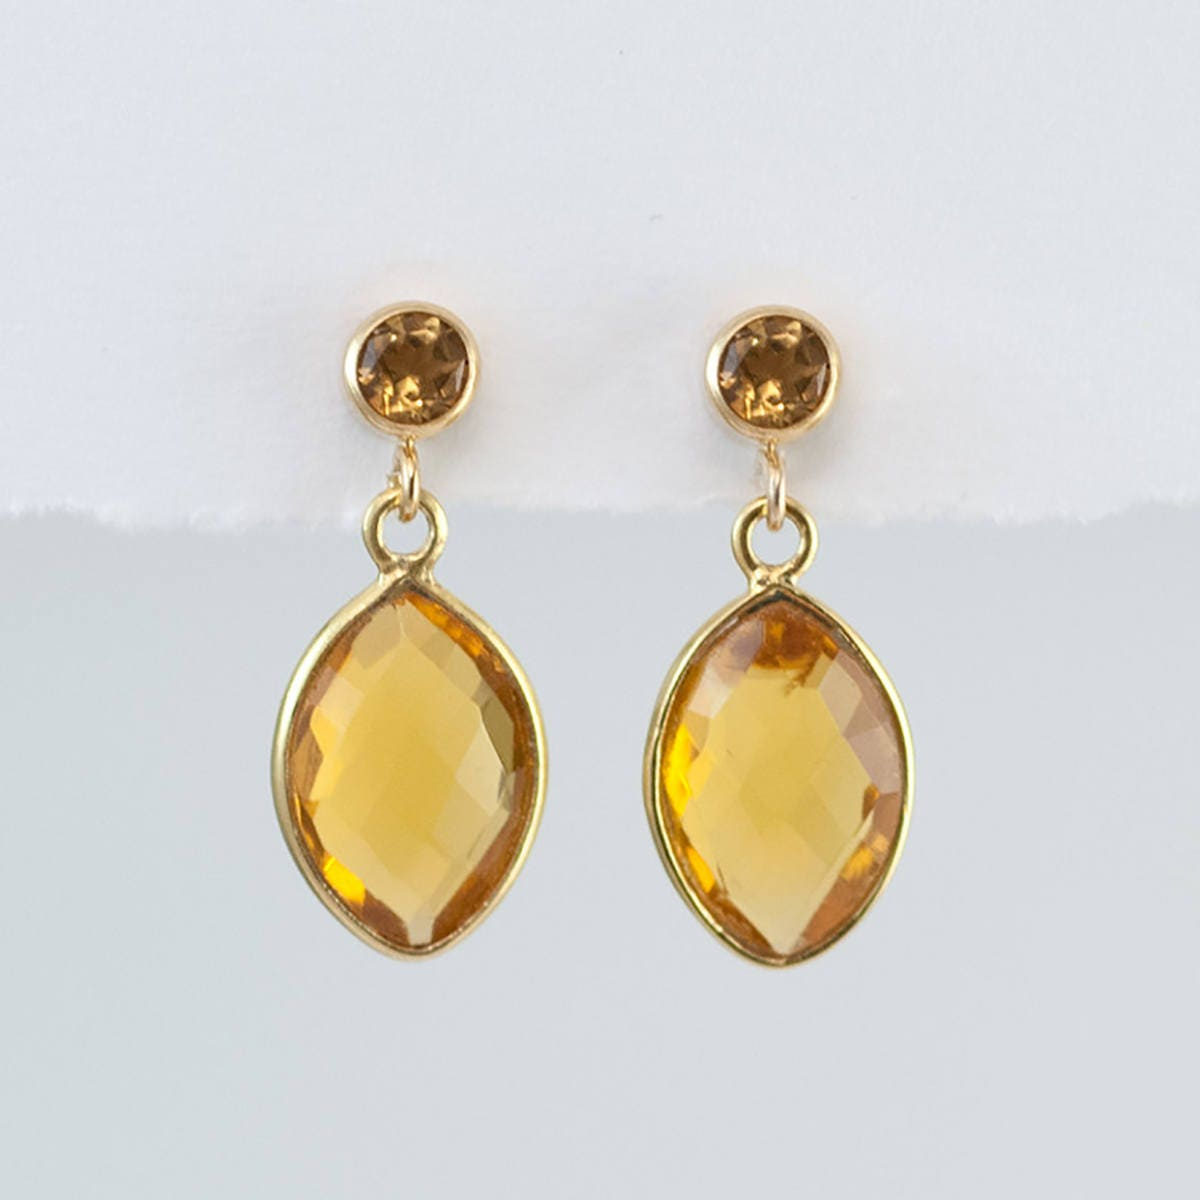 beads products of citrine earrings with filled golf wires kidney paradise ear